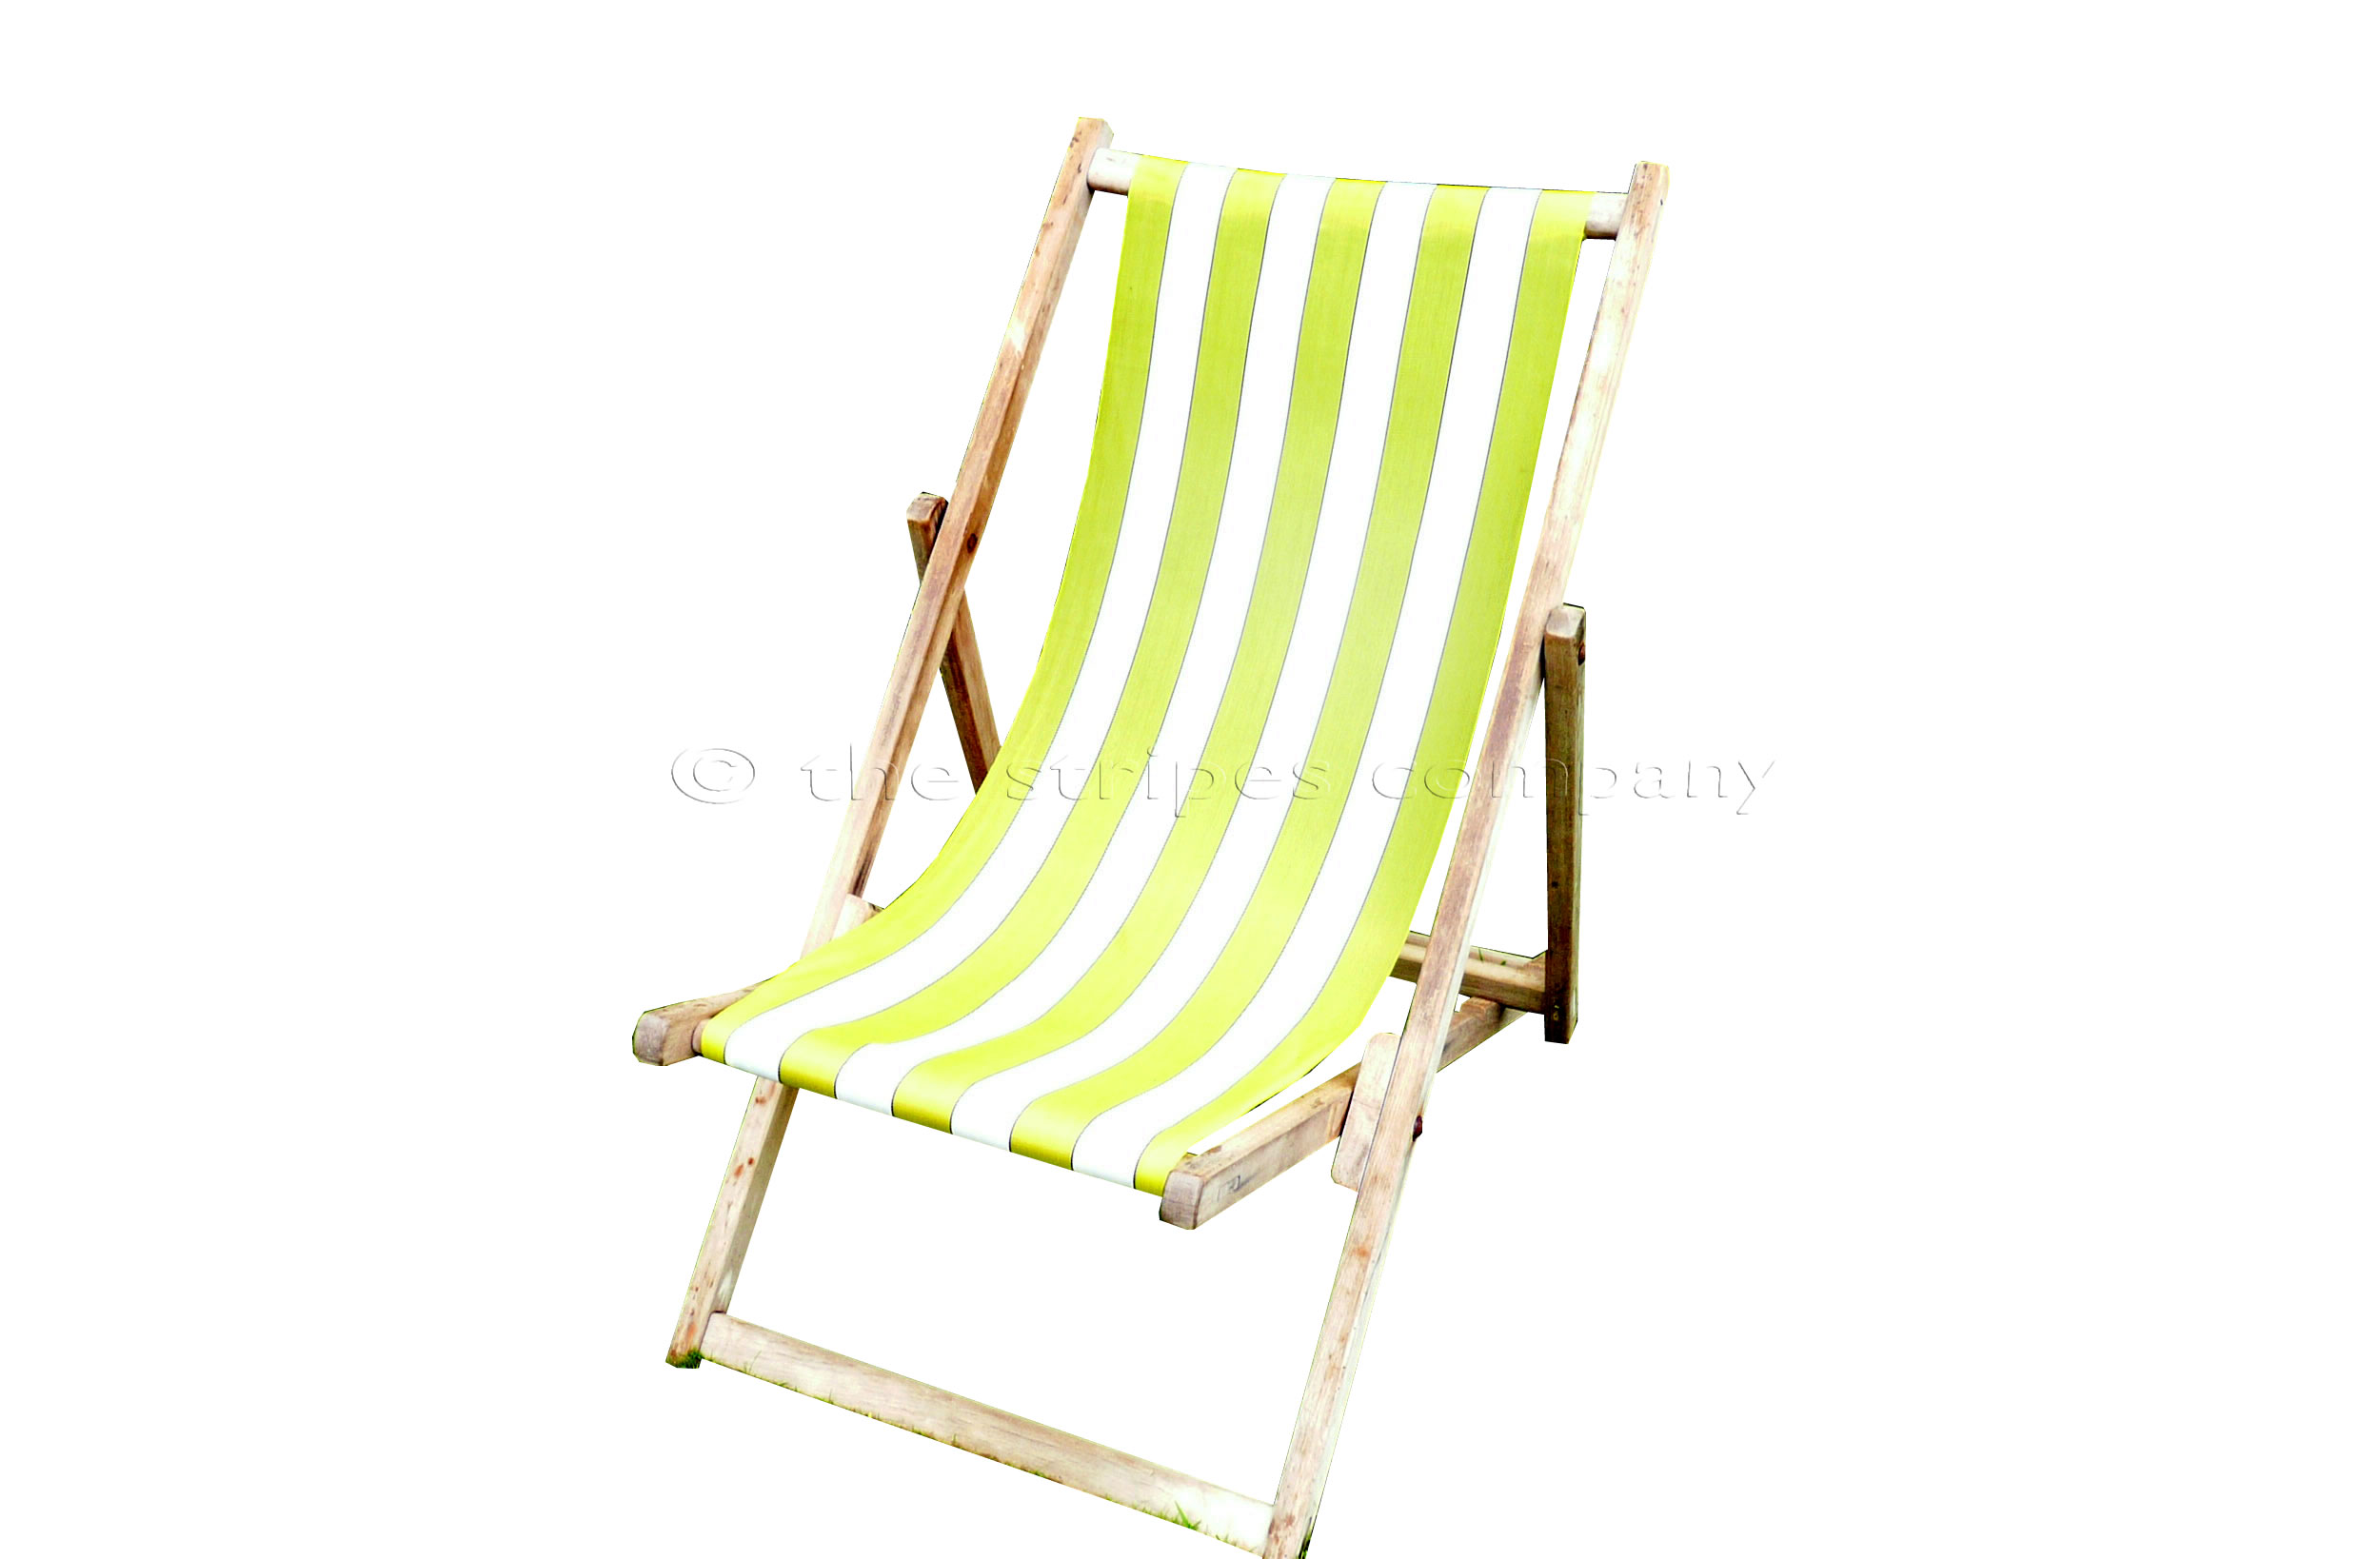 Buy Blackpool Deckchairs with New Yellow and White Sling